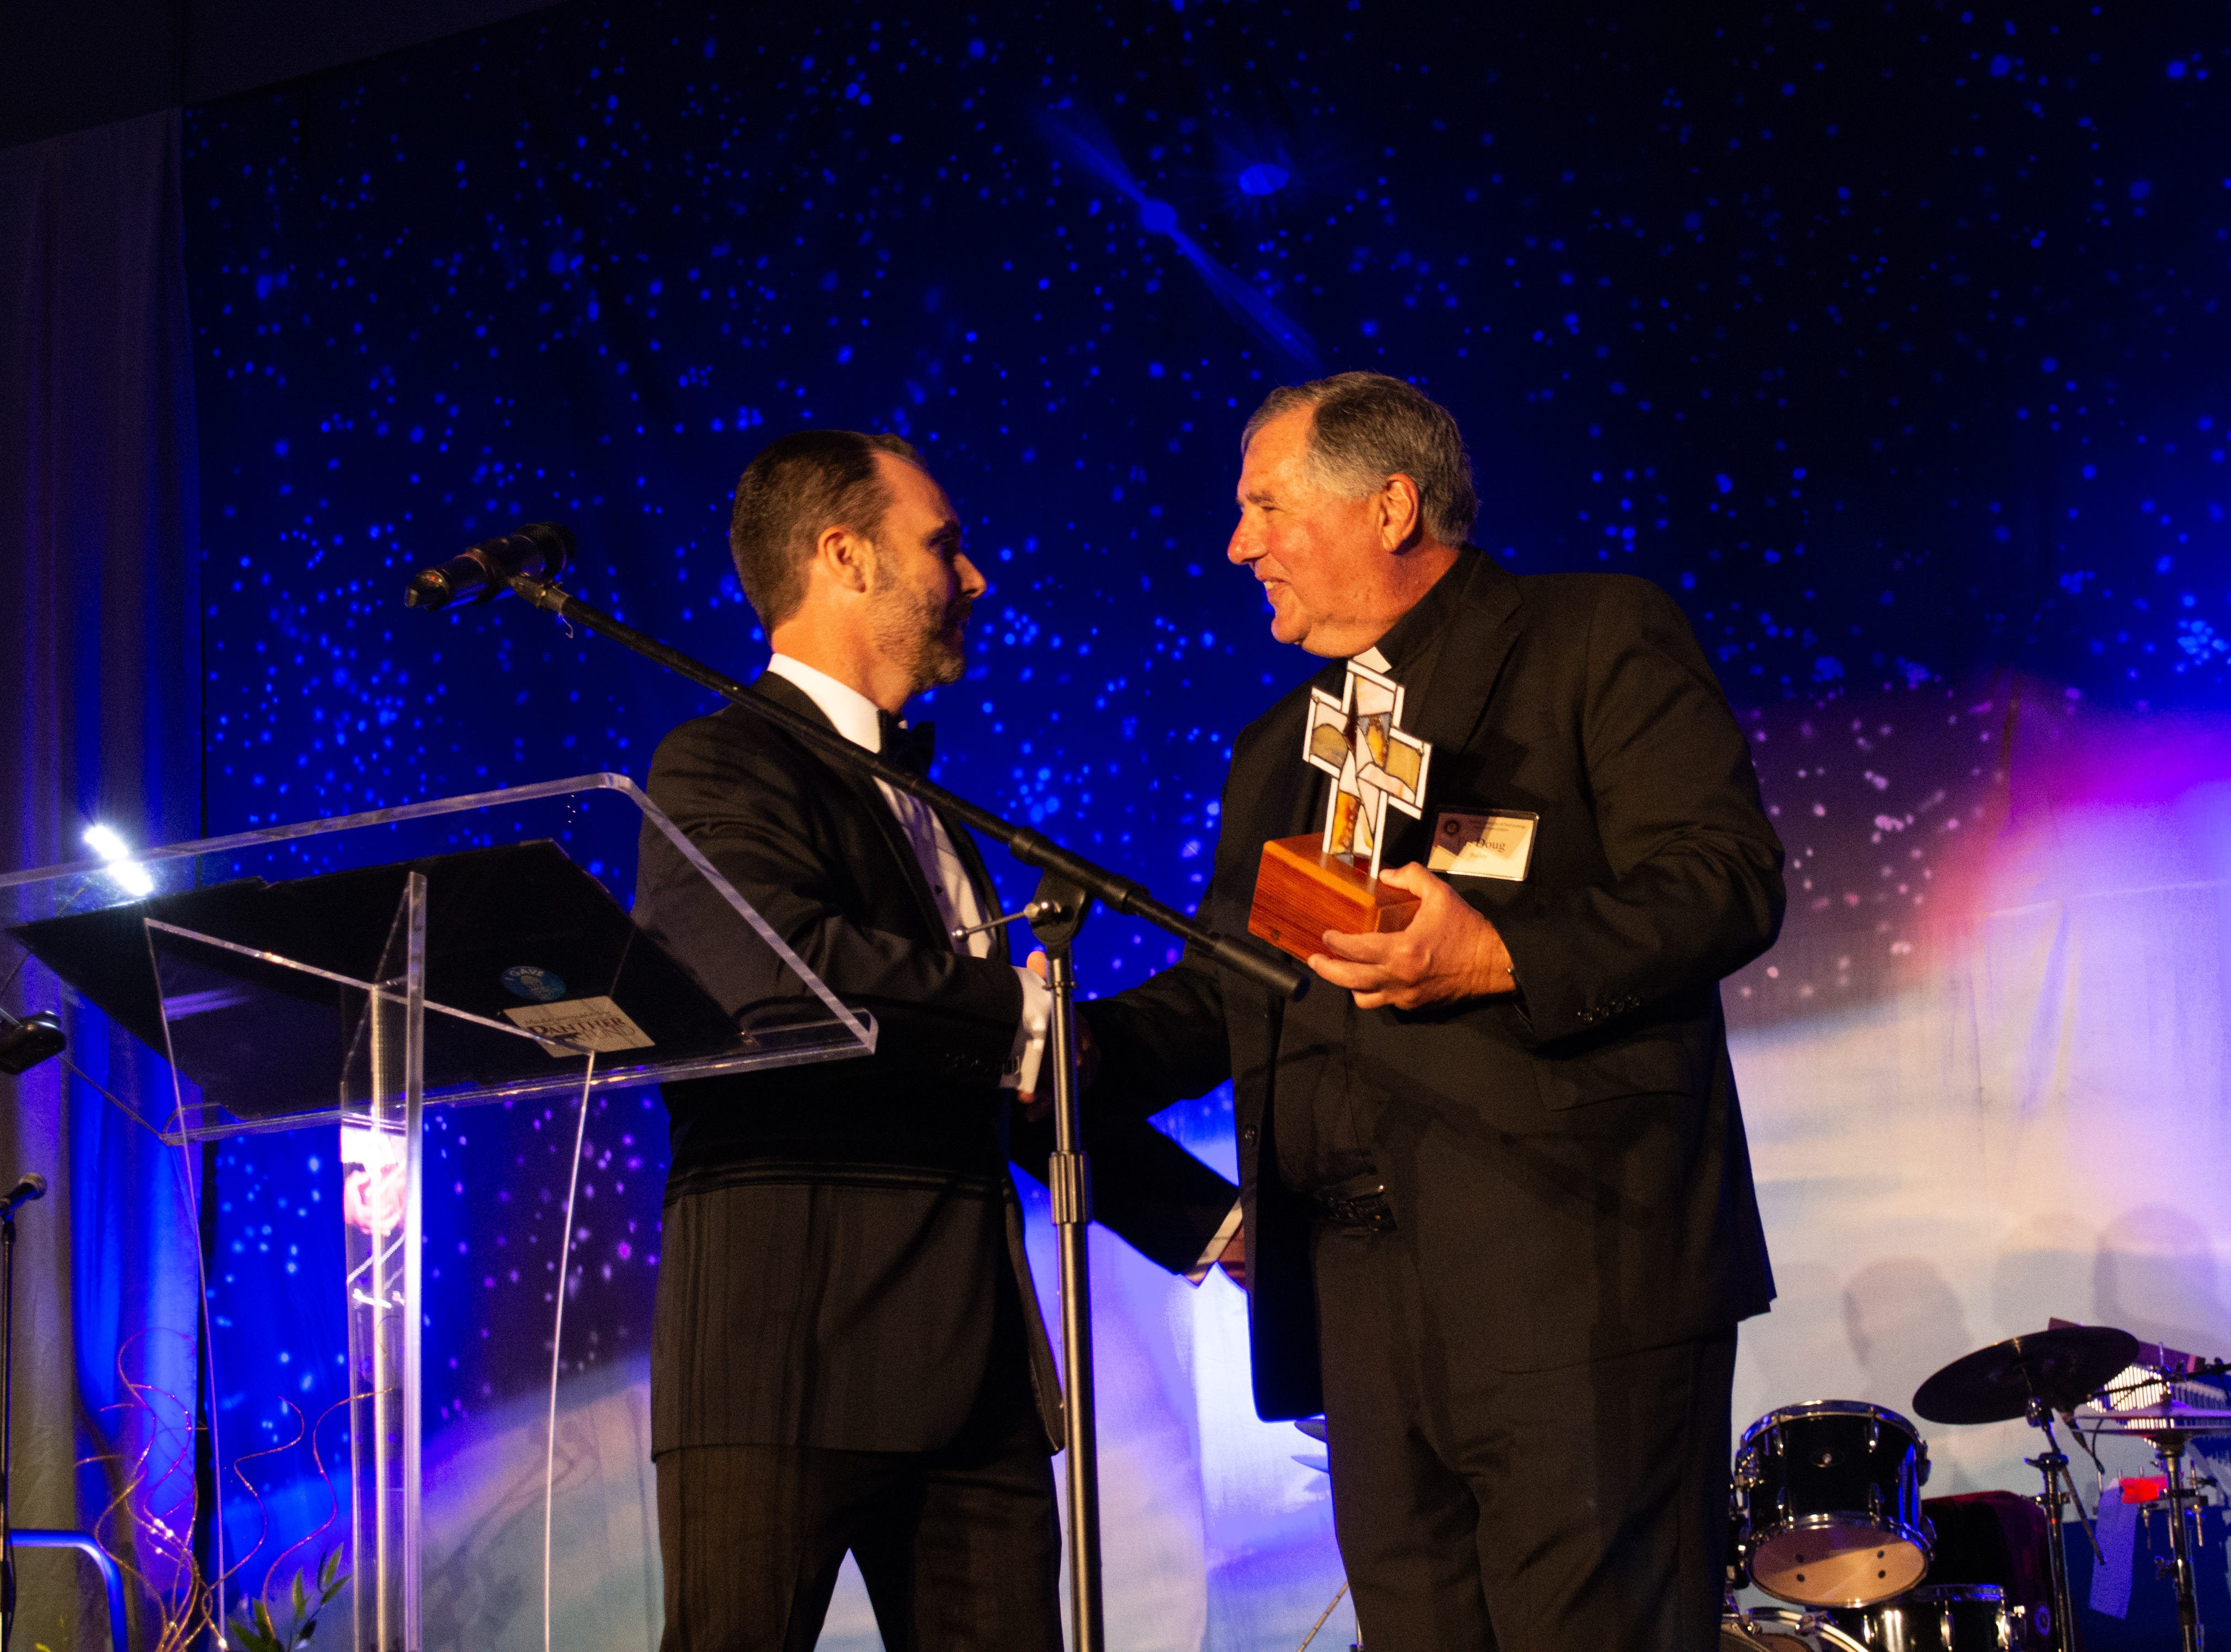 Fr. Doug Bailey, SDS, receives an award from Florida Tech's Execuitive Director of the Alumni Association and Master of Ceremonies Bino Campanini at Florida Tech's 60th Anniversary Homecoming Gala Oct. 13, 2018, at the Clemente Center.